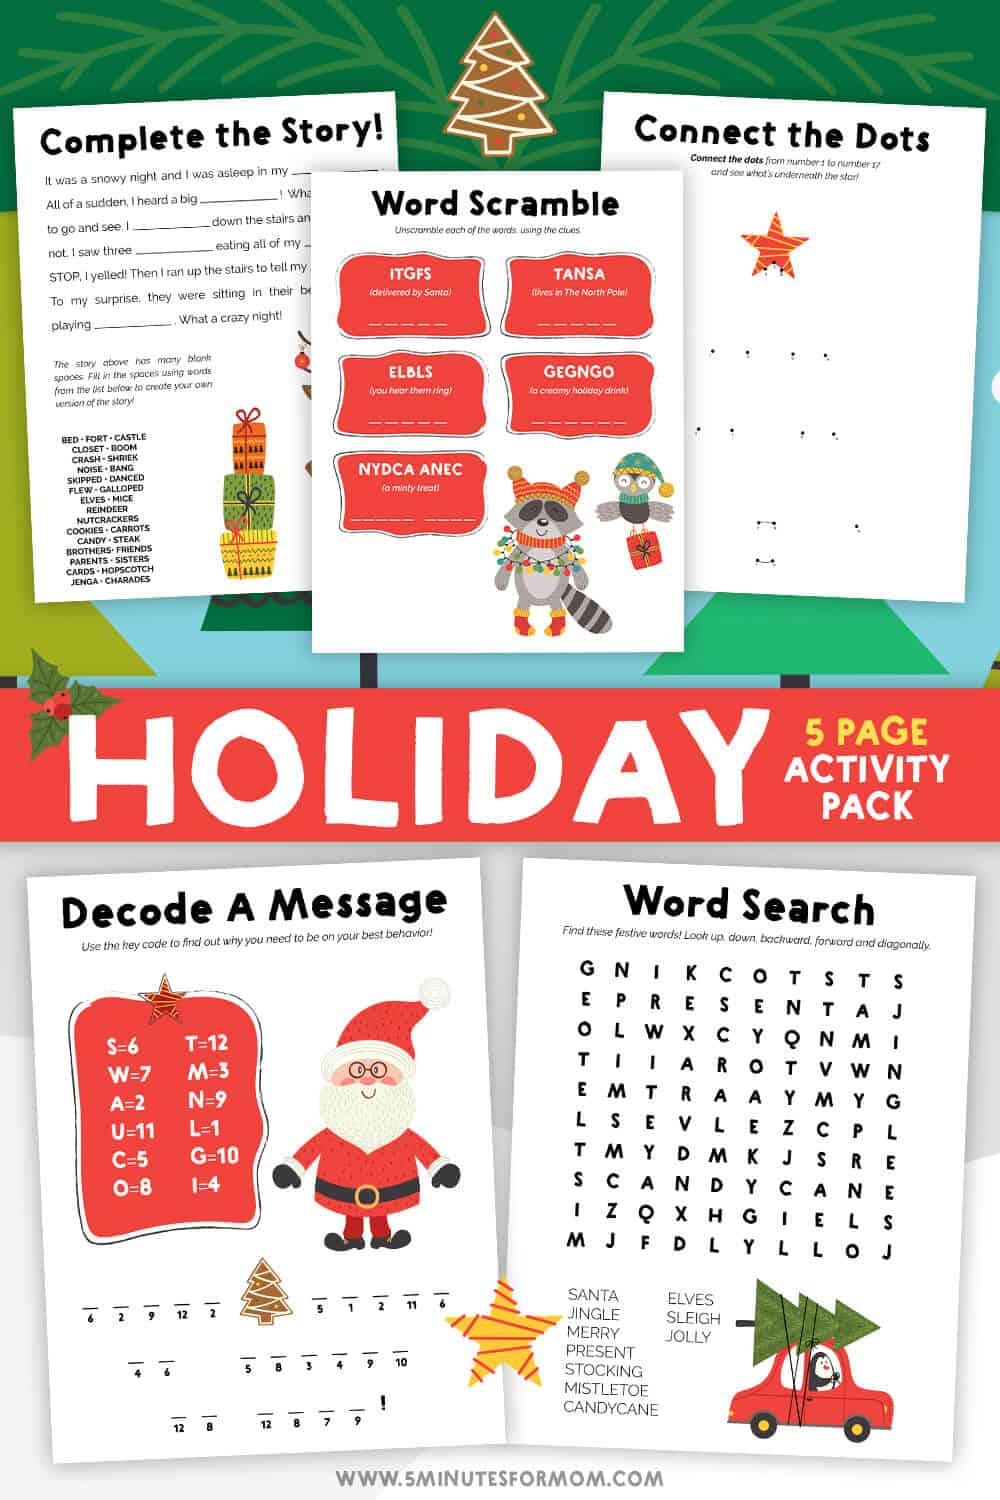 Christmas Printable Activities for Kids - Holiday Activity Pack